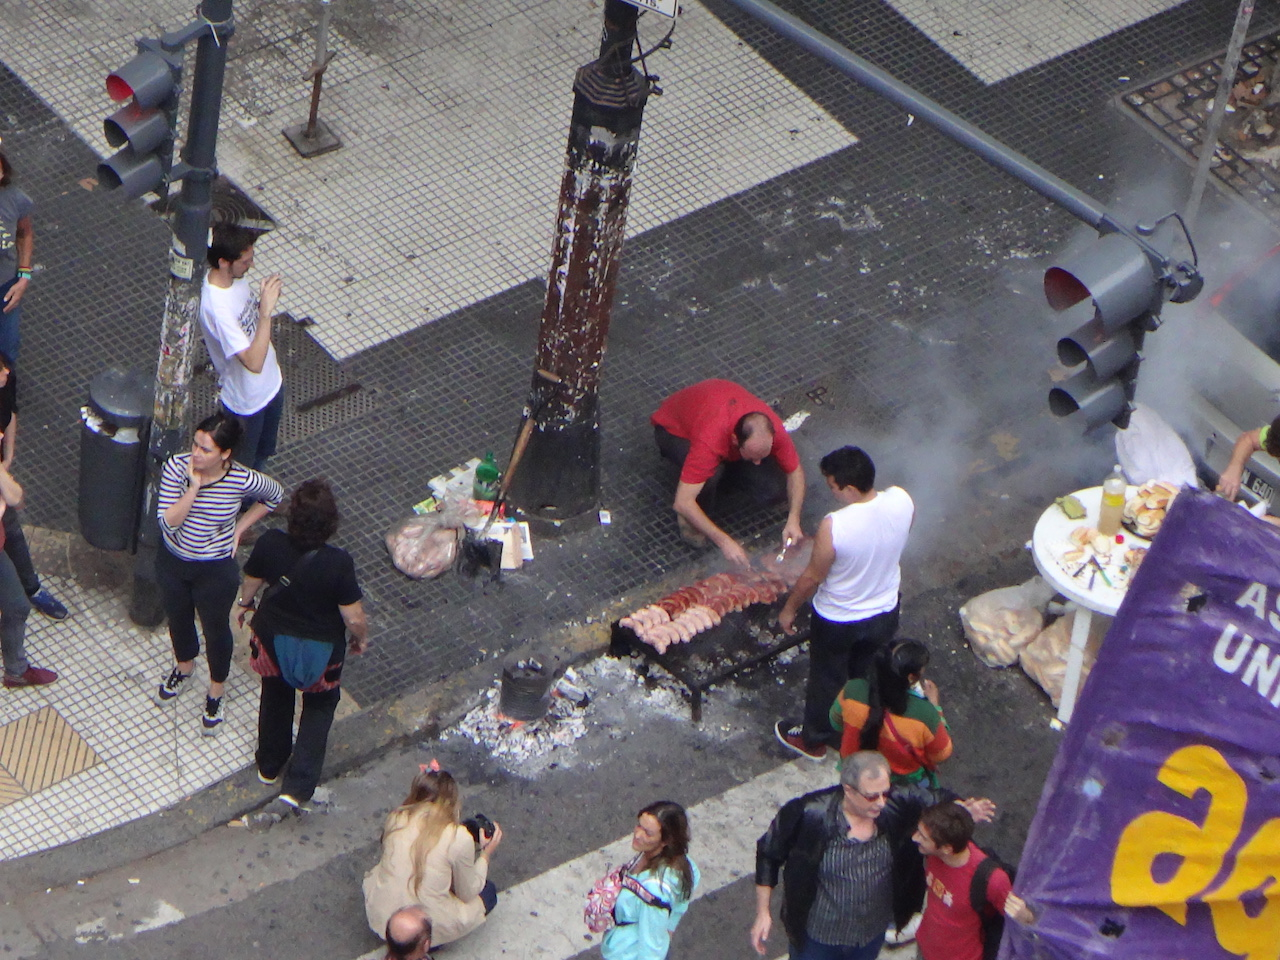 BBQ in the middle of the streets - Buenos Aires